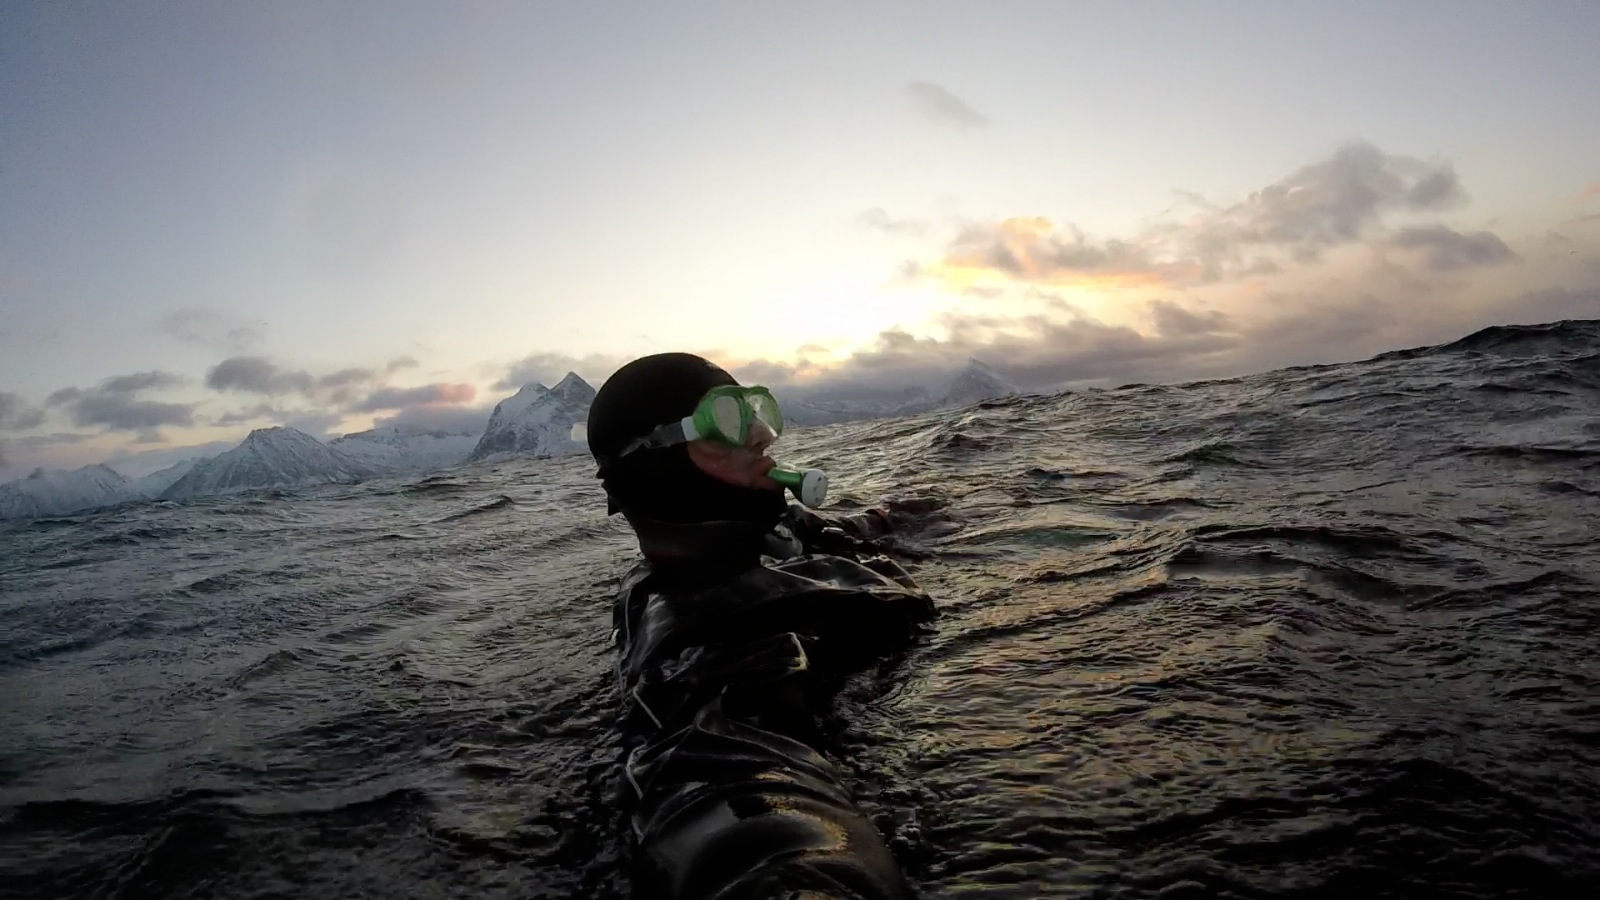 Enjoying the buoyancy of the D9 dry suit.